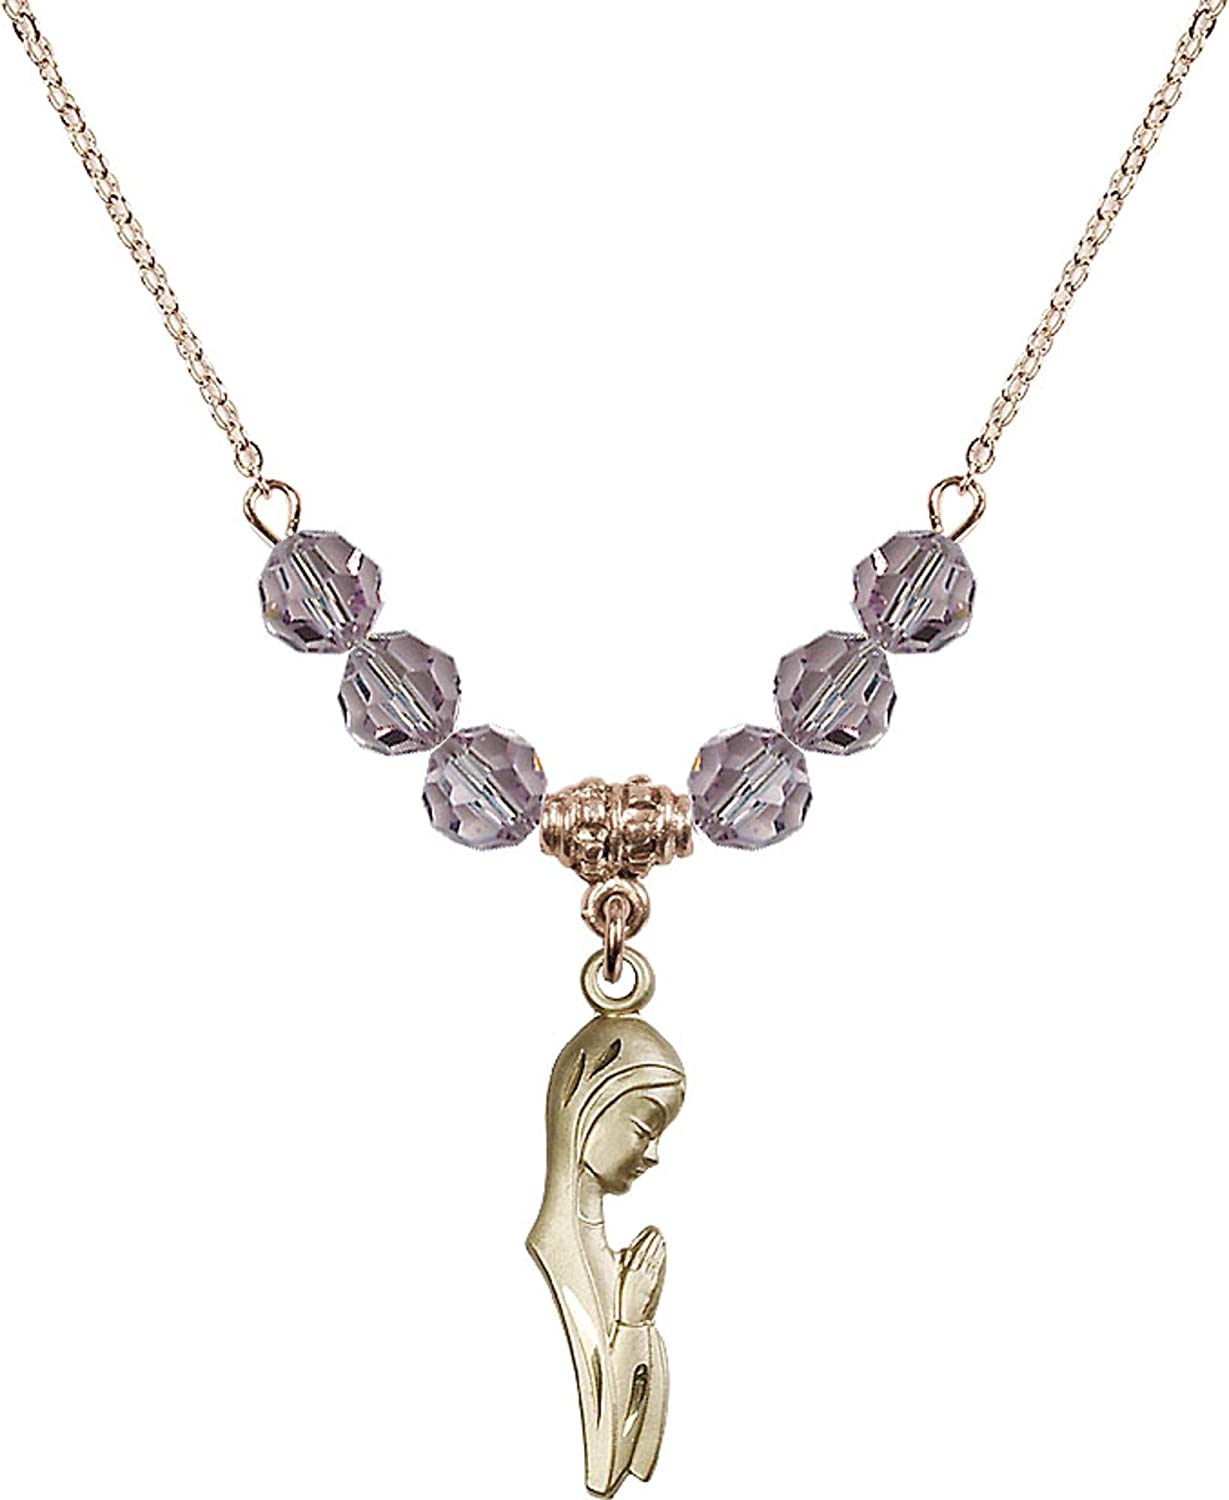 Bonyak Jewelry 18 Inch Hamilton Gold Plated Necklace w// 6mm Light Purple February Birth Month Stone Beads and Madonna Charm